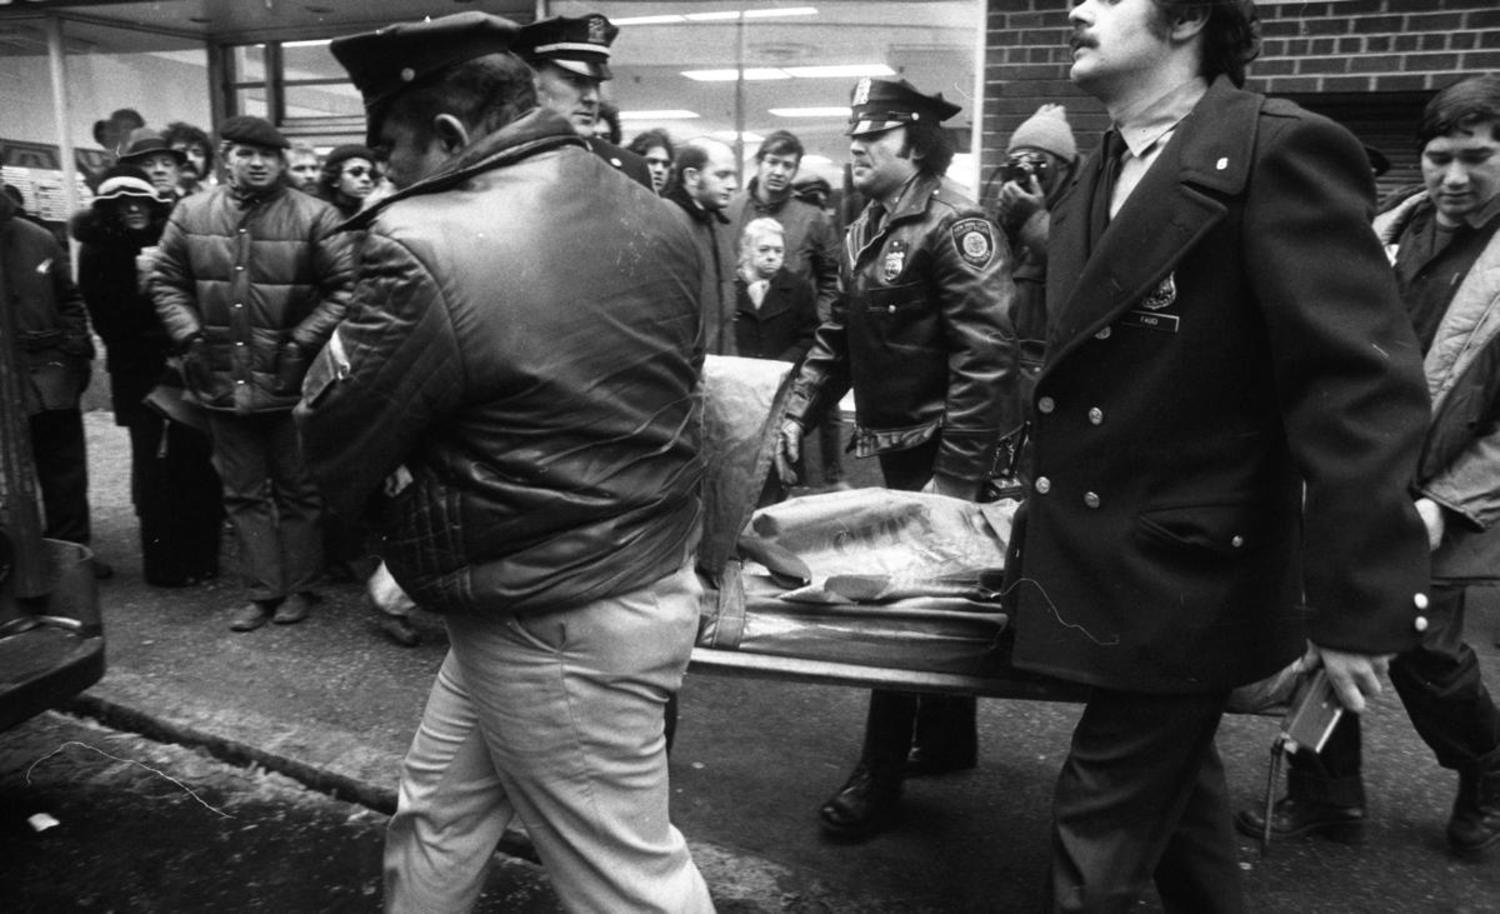 1970's: A body is covered and carried away after a patrolman was killed during a shooting at the 8th St. subway station in 1975.